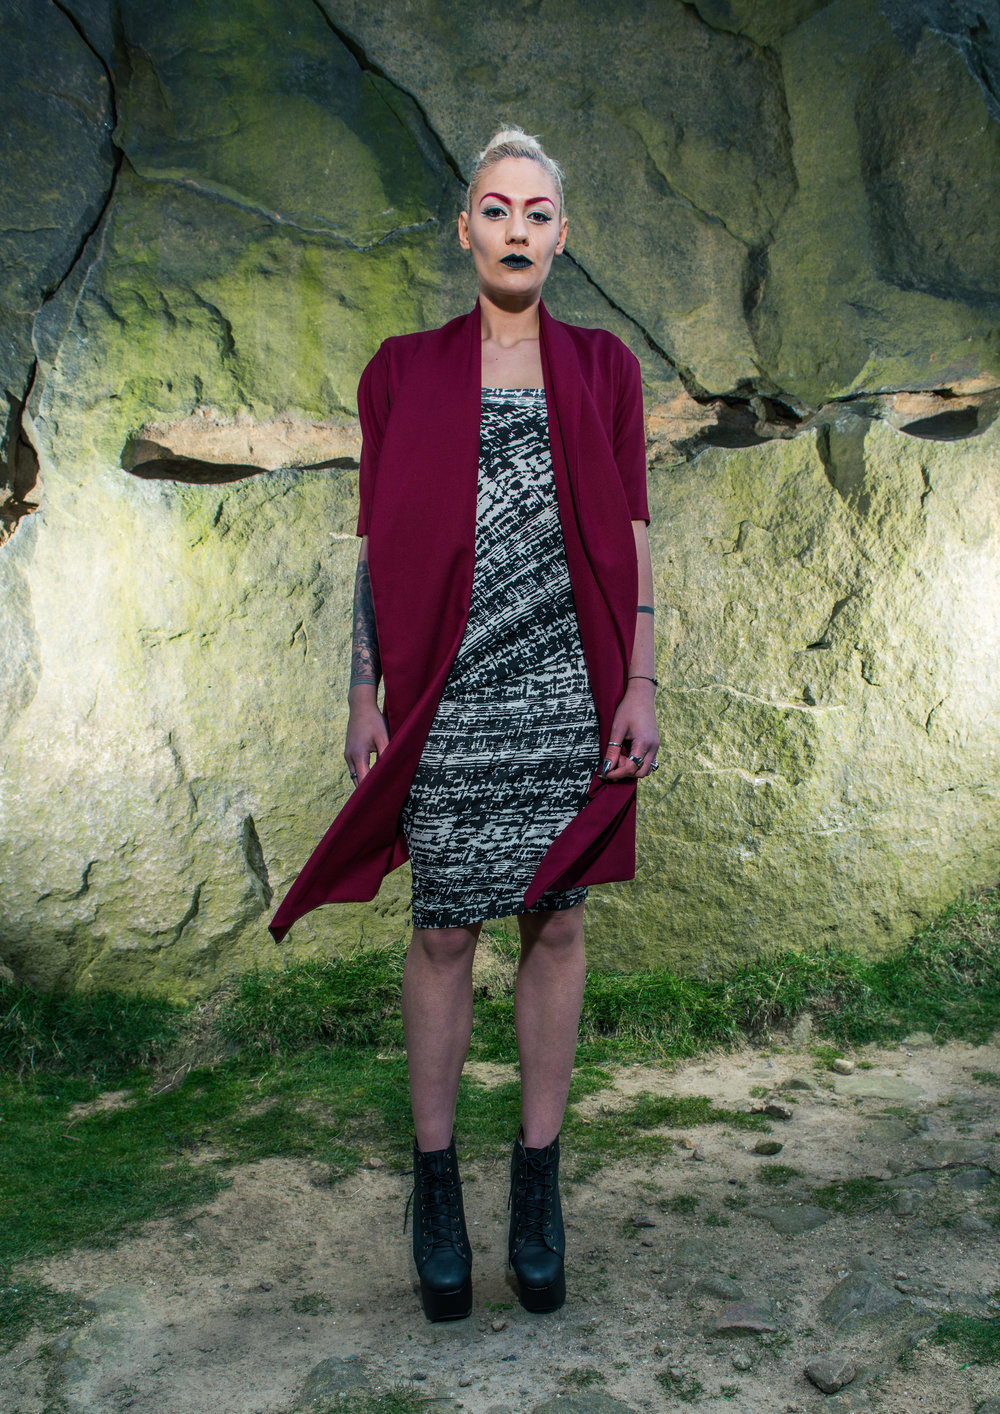 zaramia-ava-zaramiaava-leeds-fashion-designer-ethical-sustainable-tailored-minimalist-red-black-white-print-fitted-point skirt-mai-versatile-drape-cowl-styling-womenswear-models-photoshoot-location-31